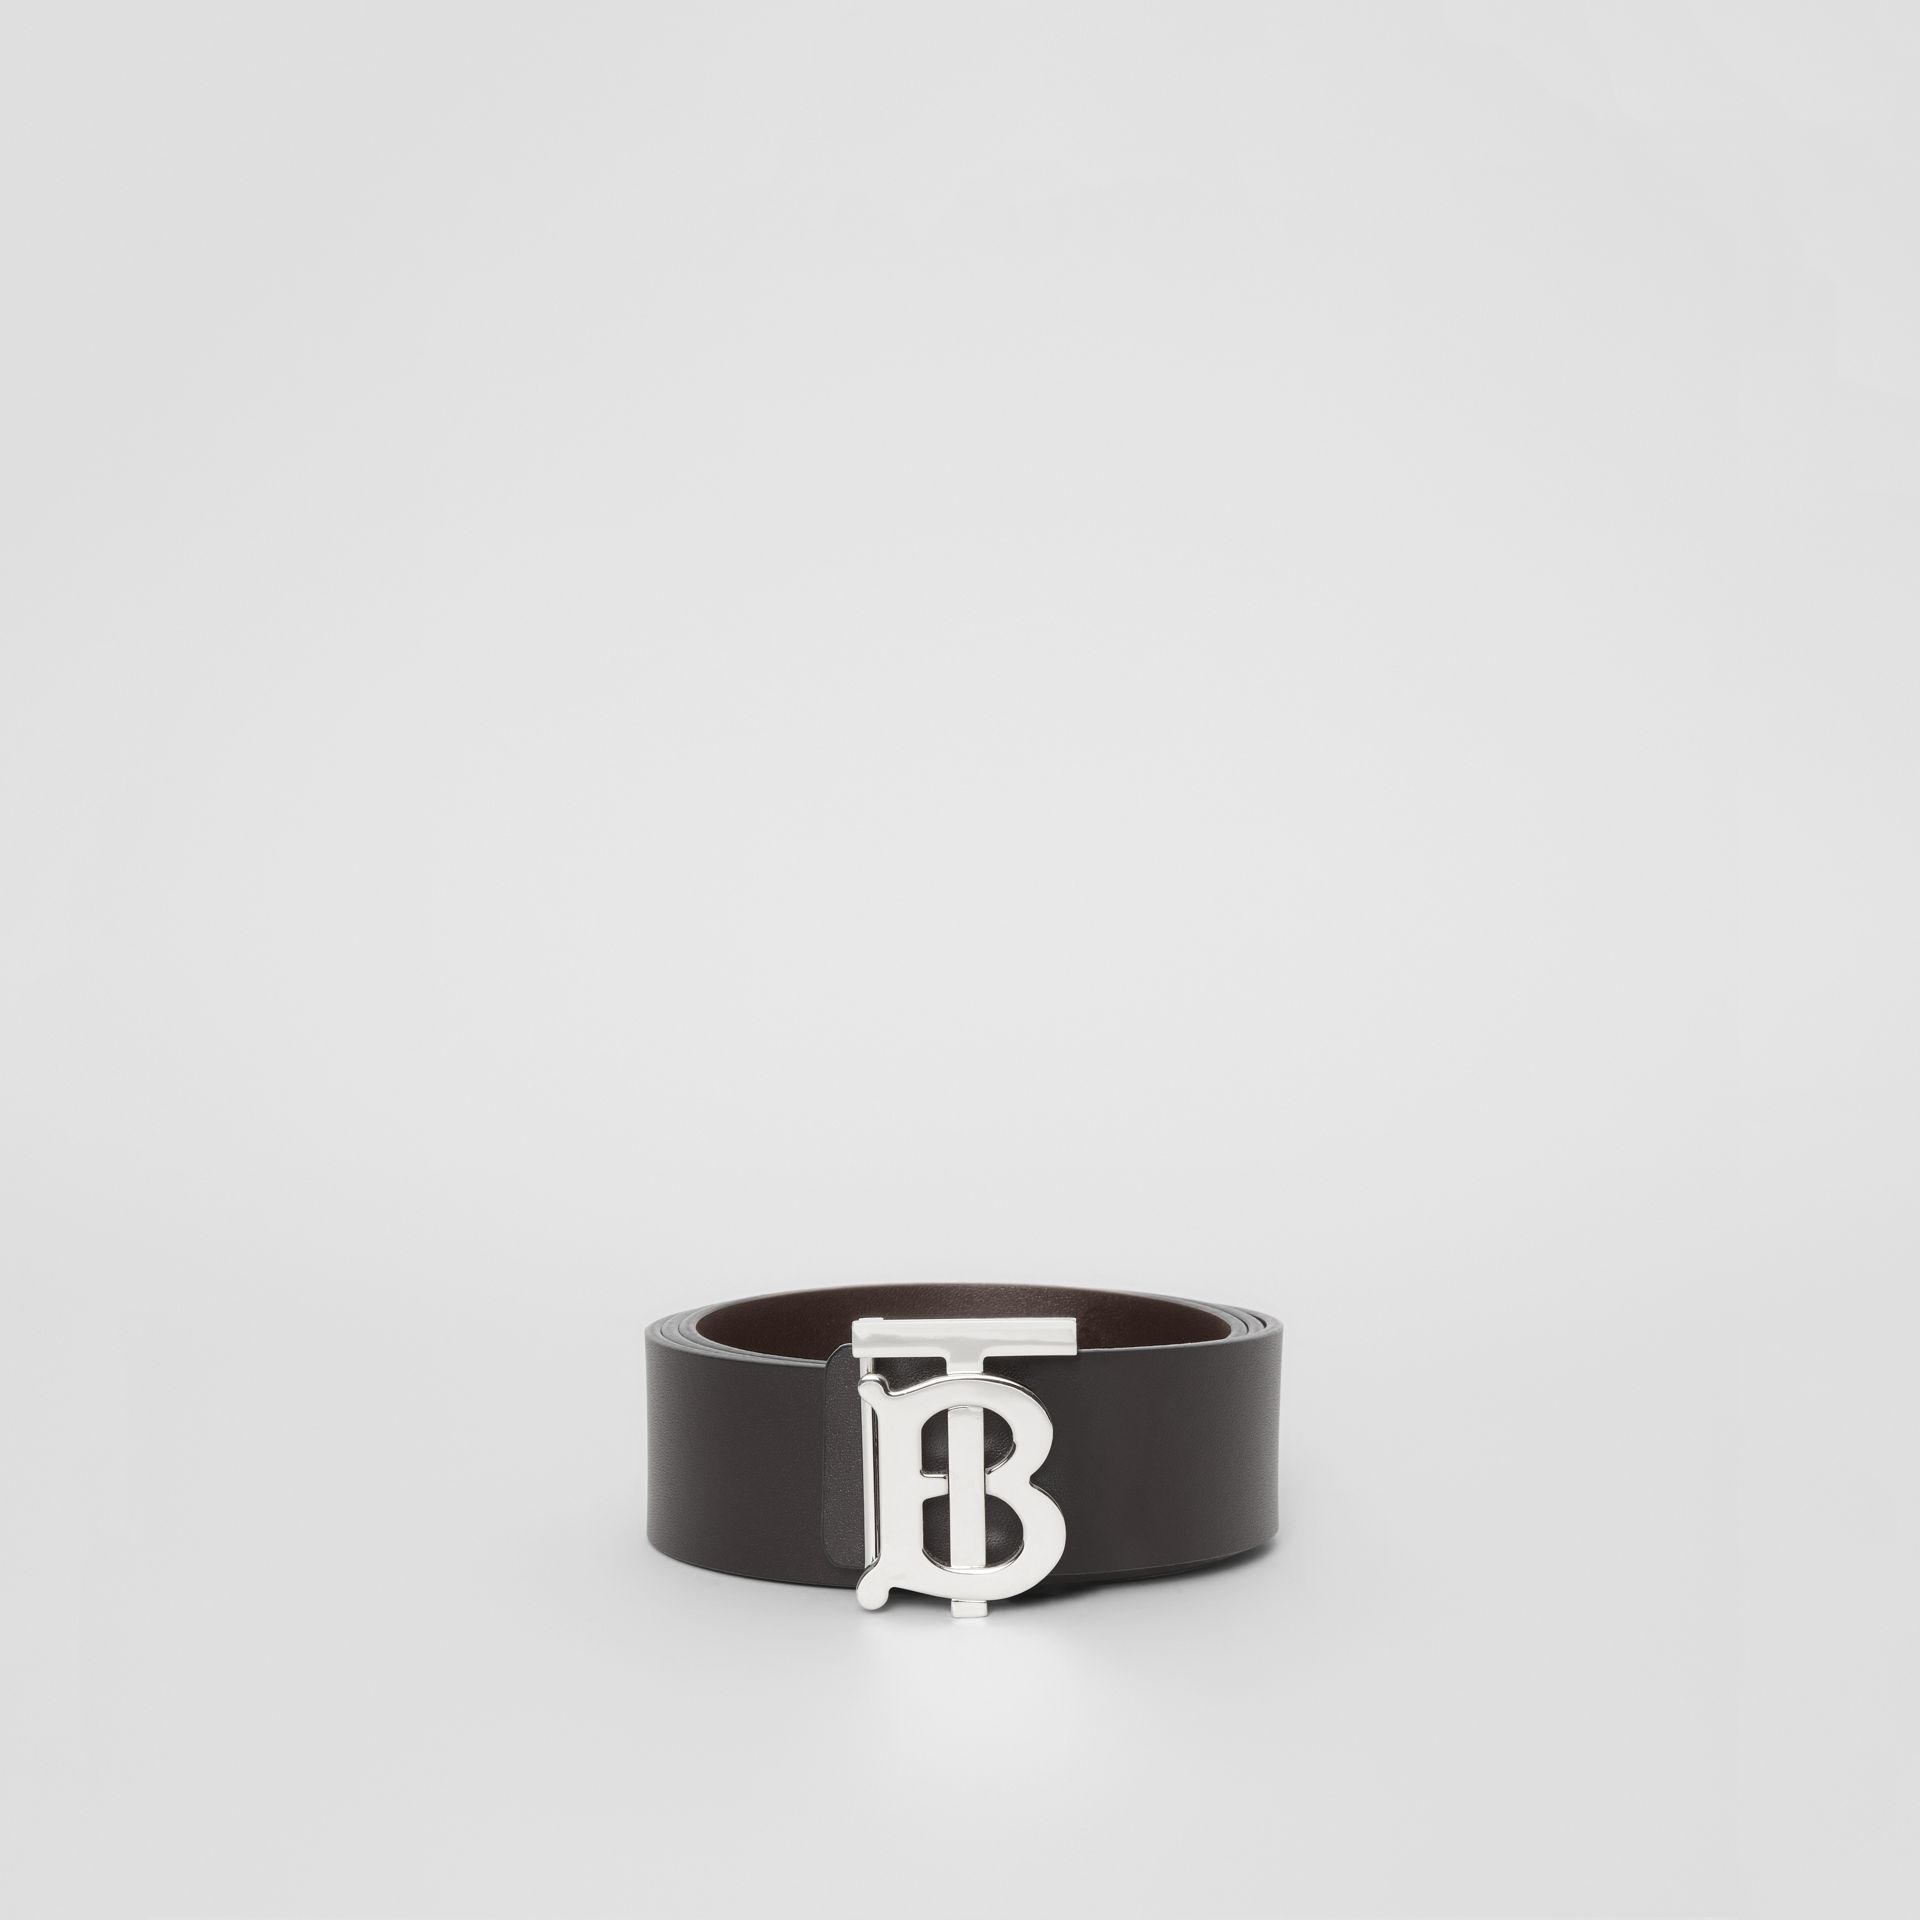 Reversible Monogram Motif Leather Belt in Black/malt Brown - Men | Burberry - gallery image 2